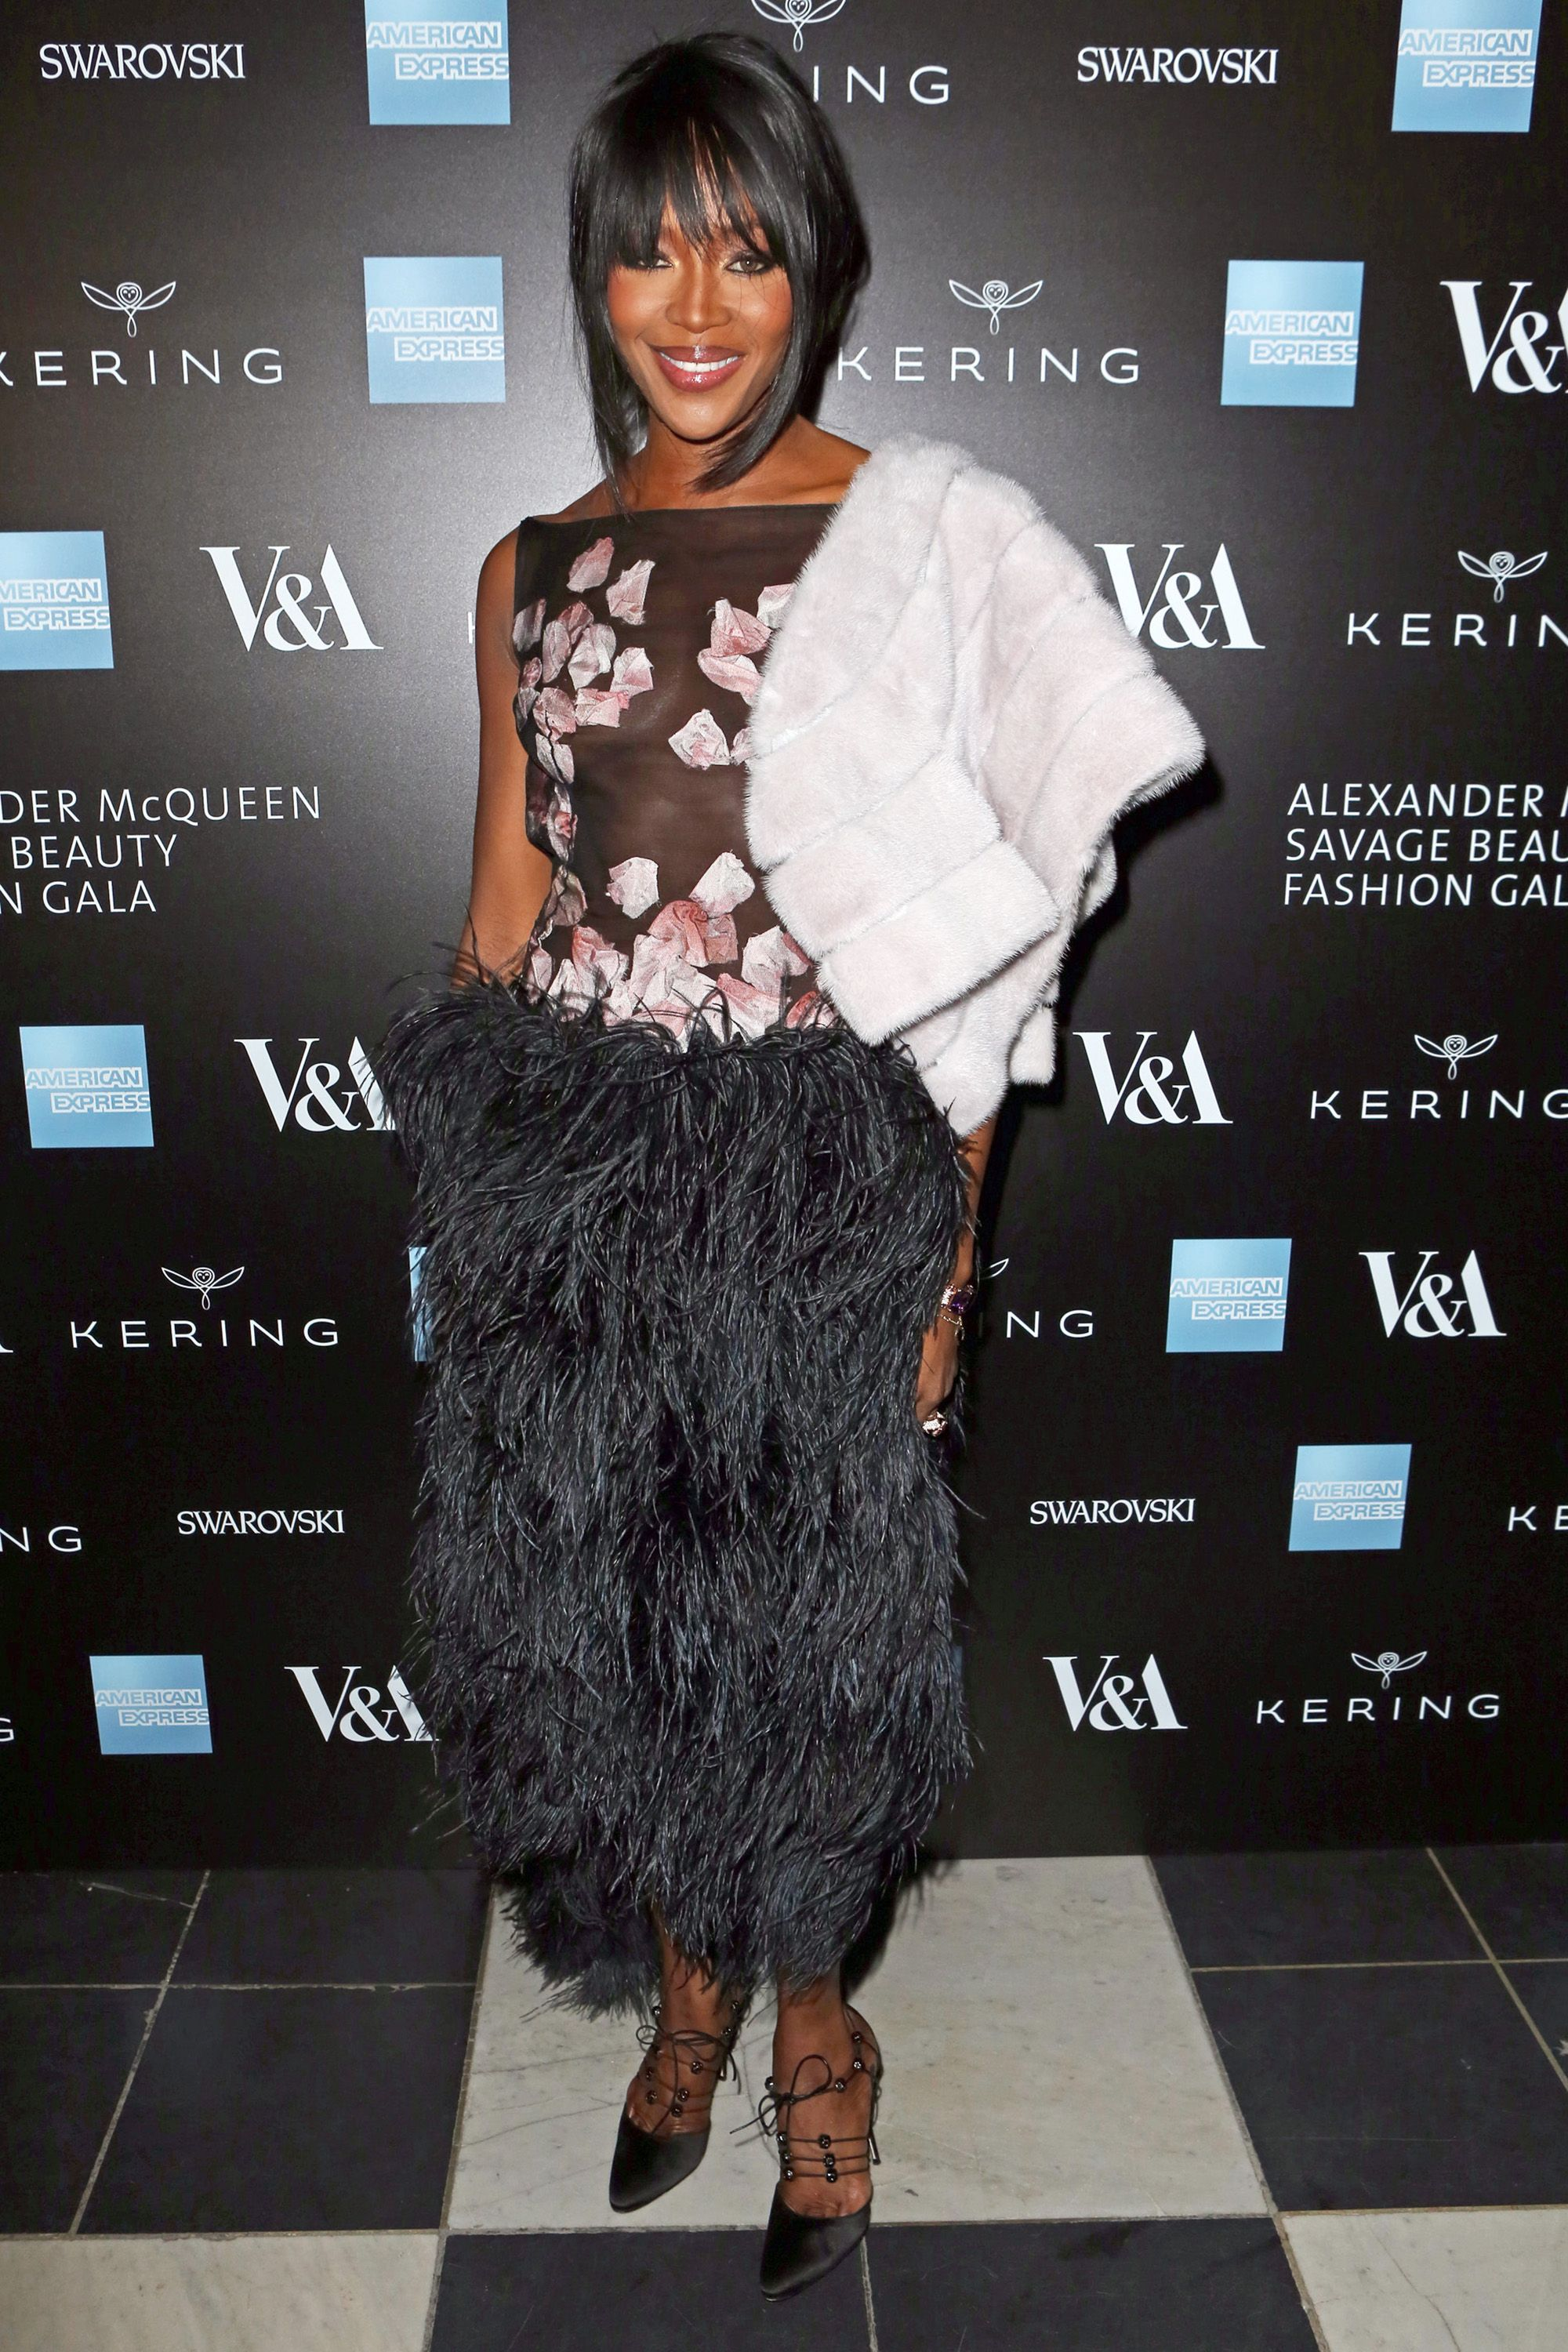 LONDON, ENGLAND - MARCH 12:  Naomi Campbell arrives at the Alexander McQueen: Savage Beauty Fashion Gala at the V&A, presented by American Express and Kering on March 12, 2015 in London, England.  (Photo by David M. Benett/Getty Images for Victoria and Albert Museum)